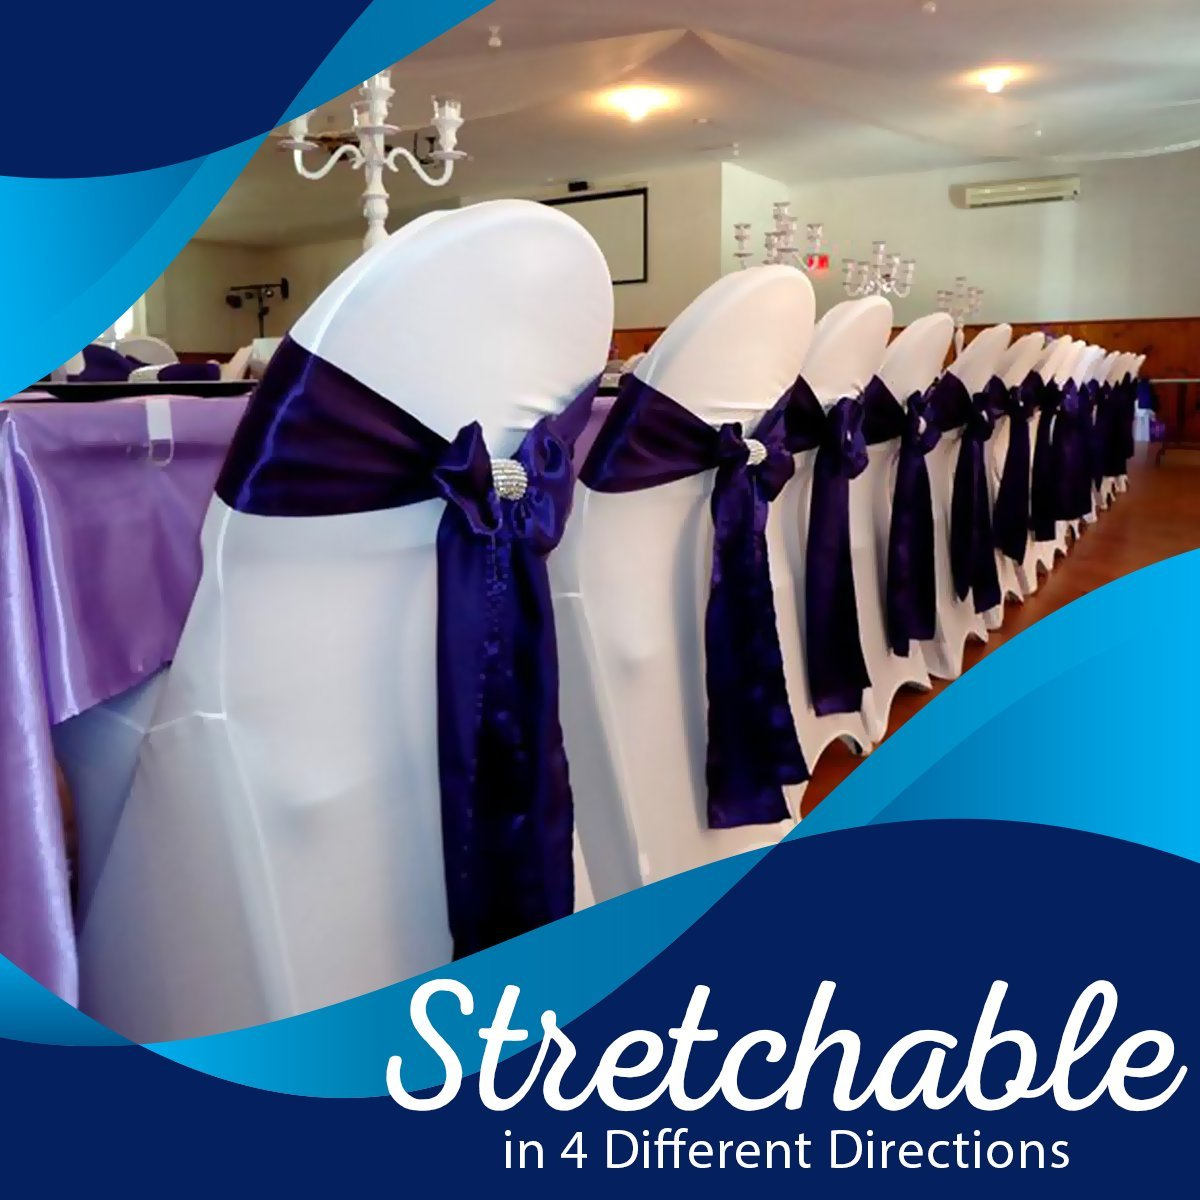 SPRINGROSE White Scuba Spandex Stretch Universal Wedding Chair Covers (set of 10). It is Made For Use on Folding and Banquet Chairs.